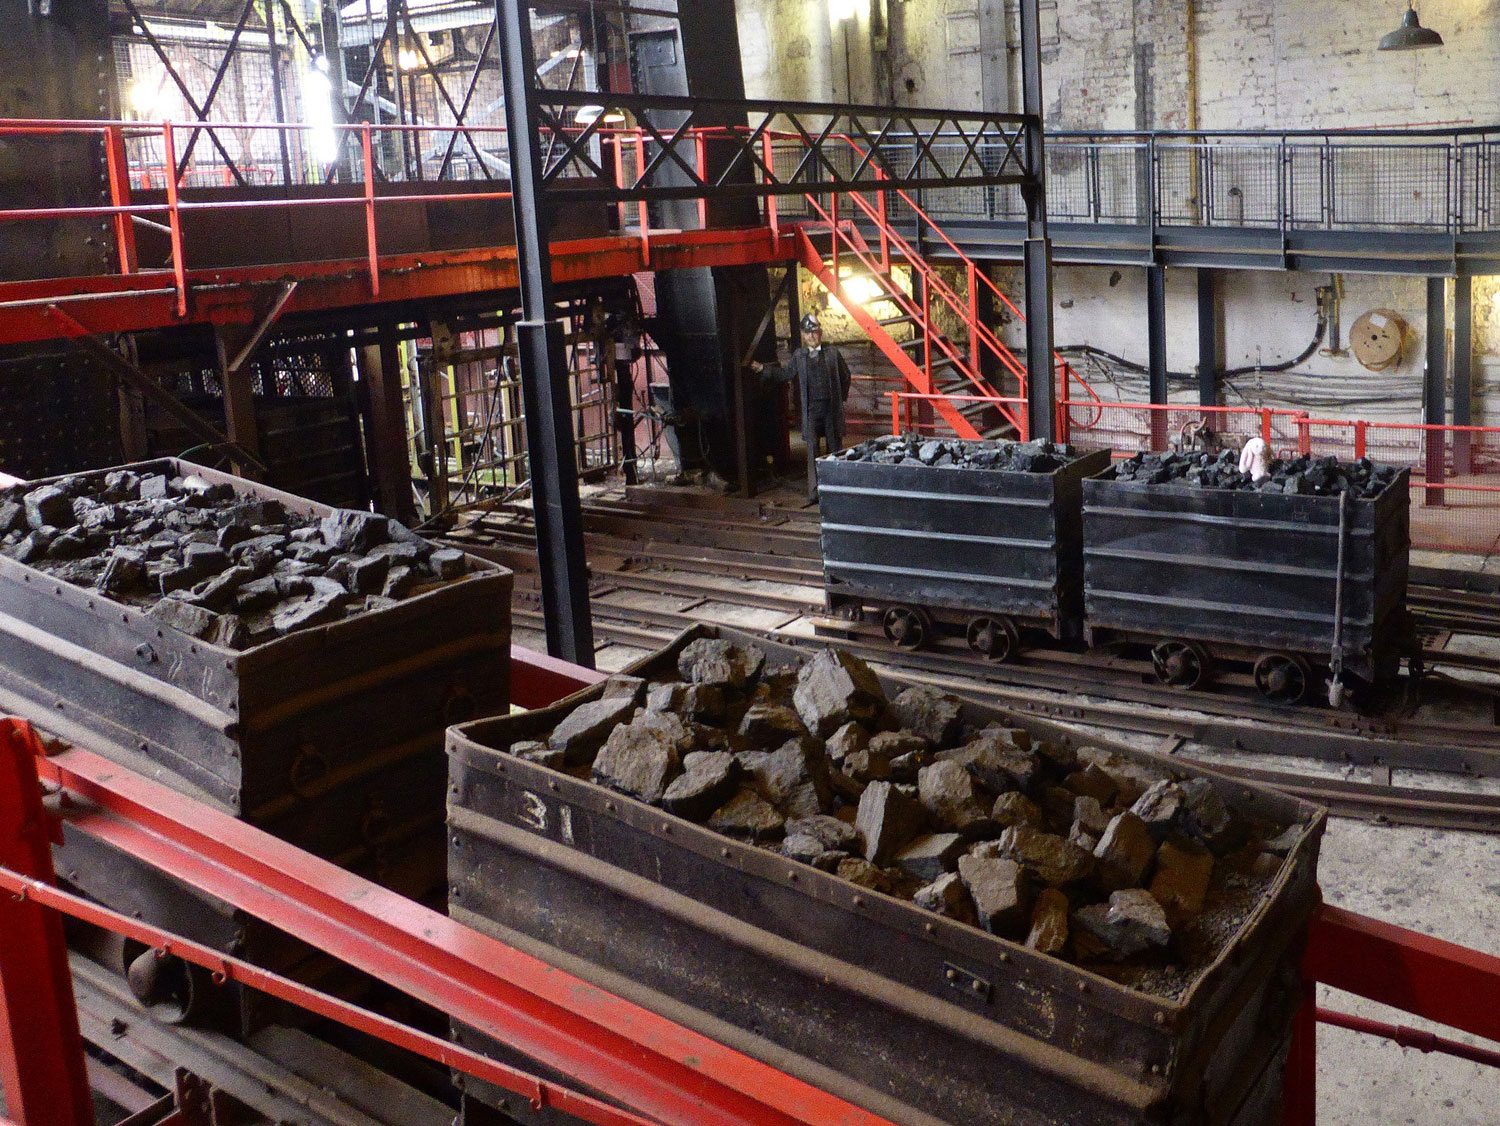 photograph of interior of disused coal mine warehouse showing containers of coal on railway tracks